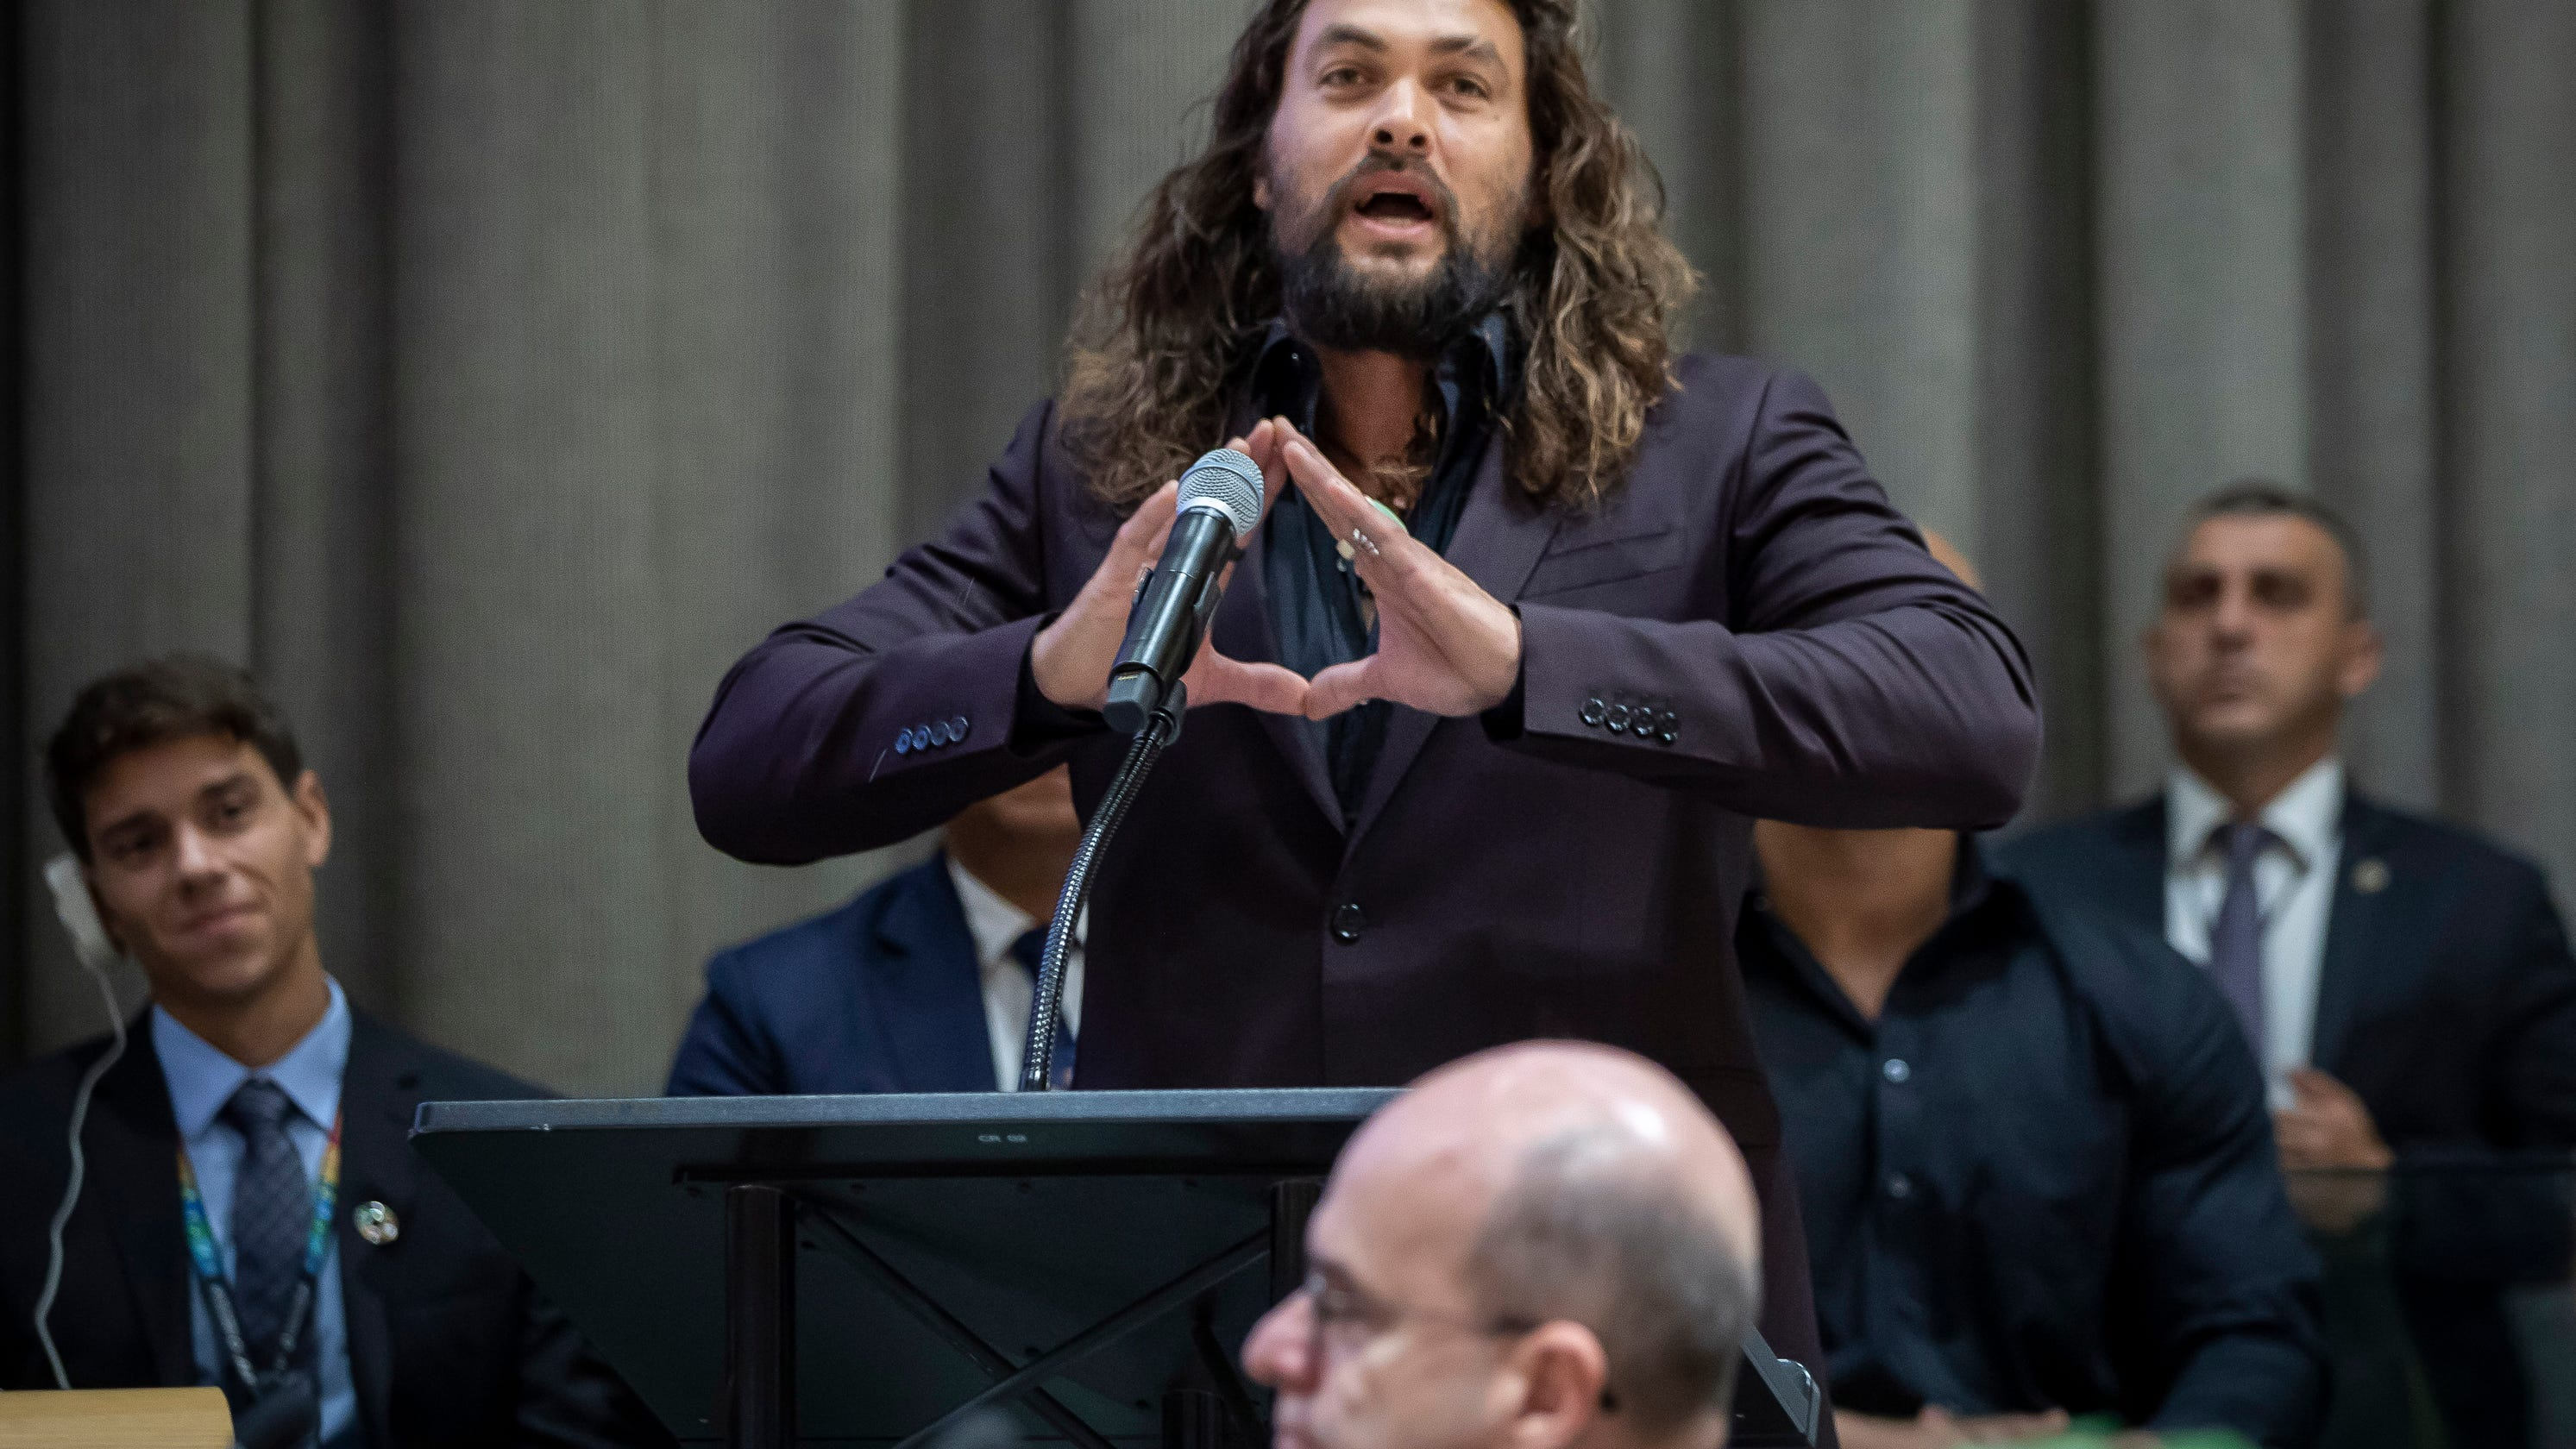 Iowa raised actor Jason Momoa addresses climate change in UN speech - Des Moines Register